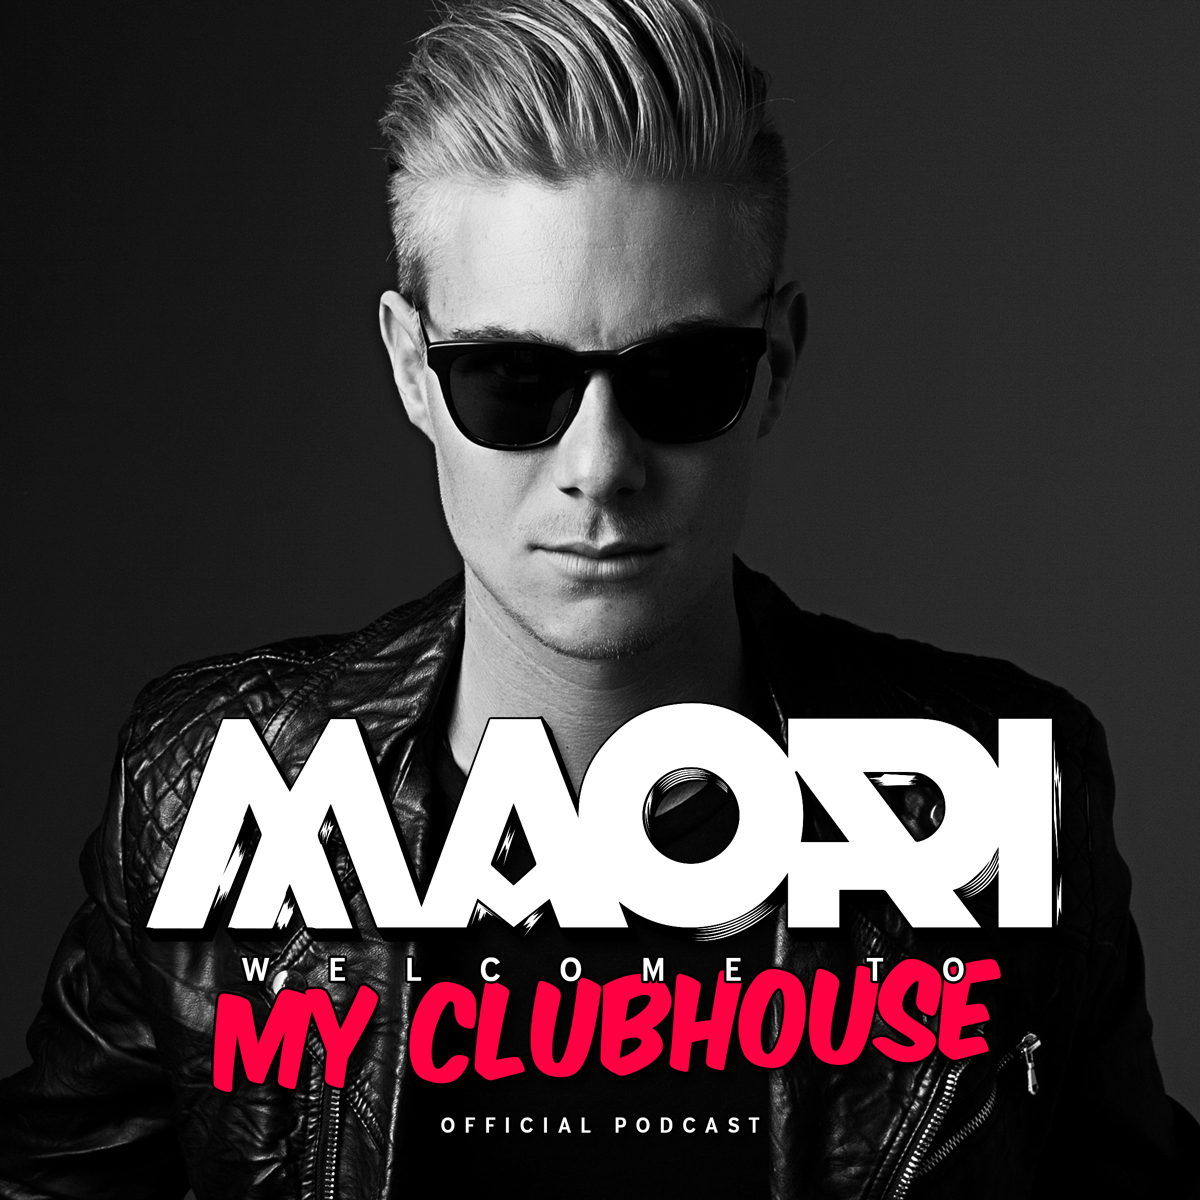 My Clubhouse by Maori - Podcast #002